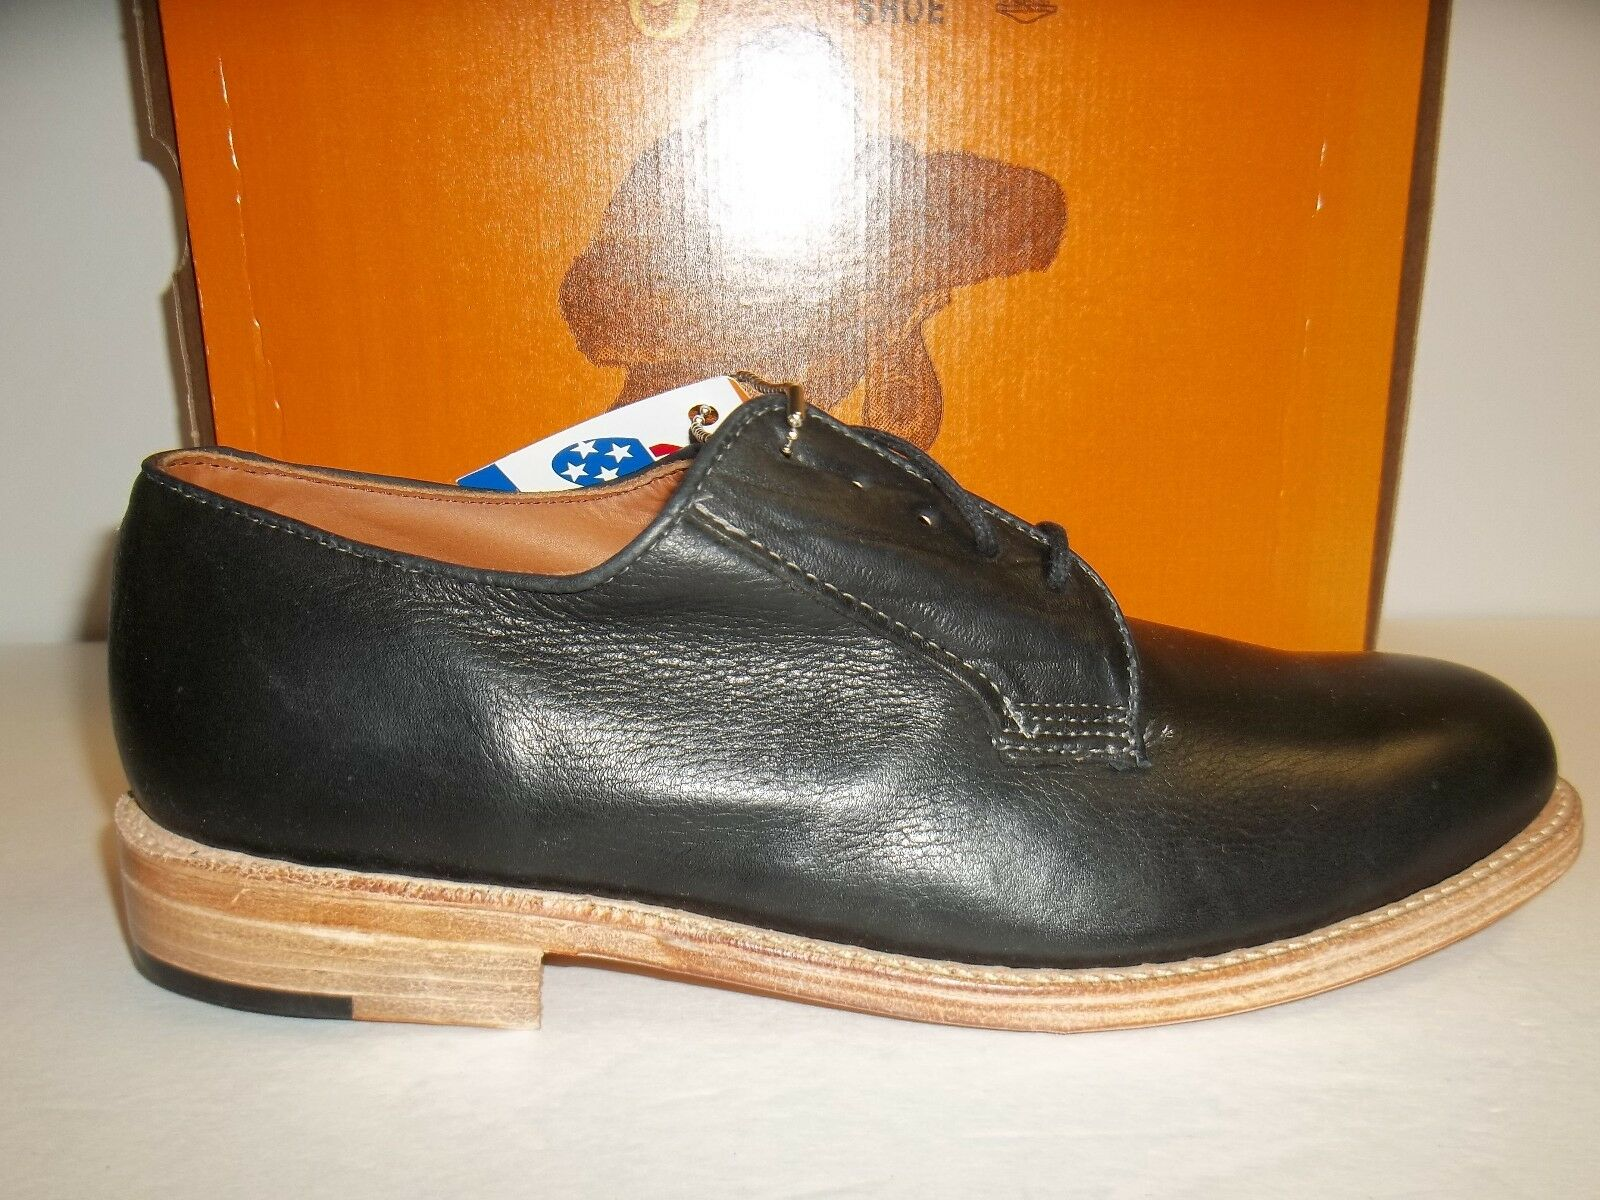 The Gorilla shoes Sz 9.5 M Dress Low Black Harness Leather Oxfords New Mens shoes